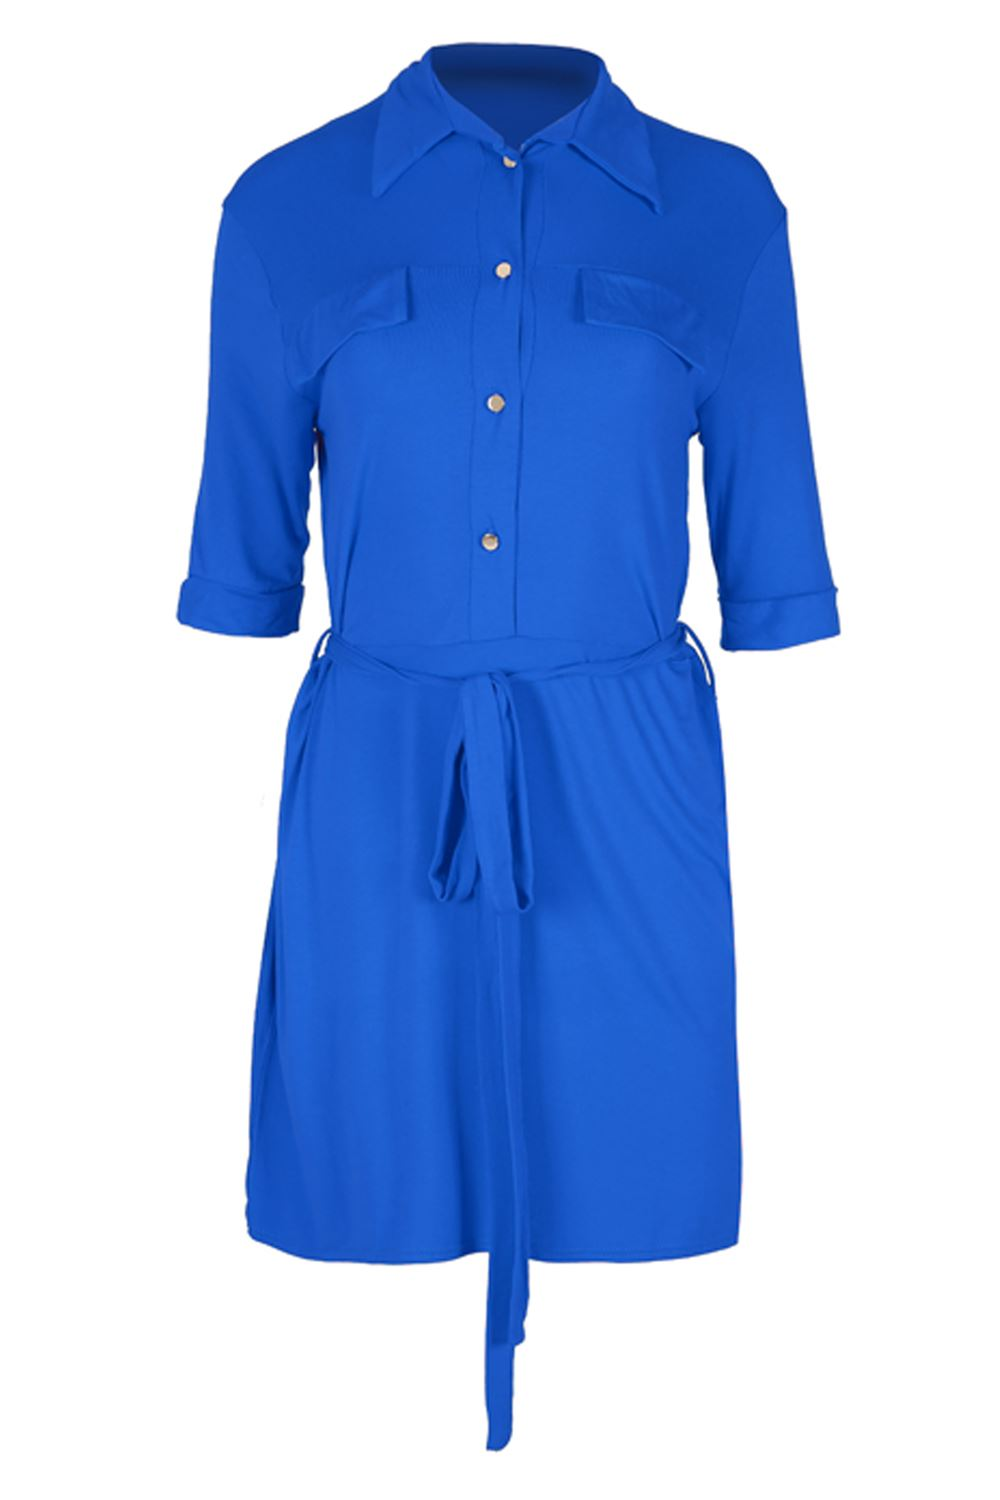 Beautiful Nude Belted Shirt Dress From Kenzo Featuring A Cutaway Collar, A Concealed Front Fastening And Short Sleeves Size 42 Color Nudeneutrals Gender Female Material LinenFlaxPolyesterCuproViscose